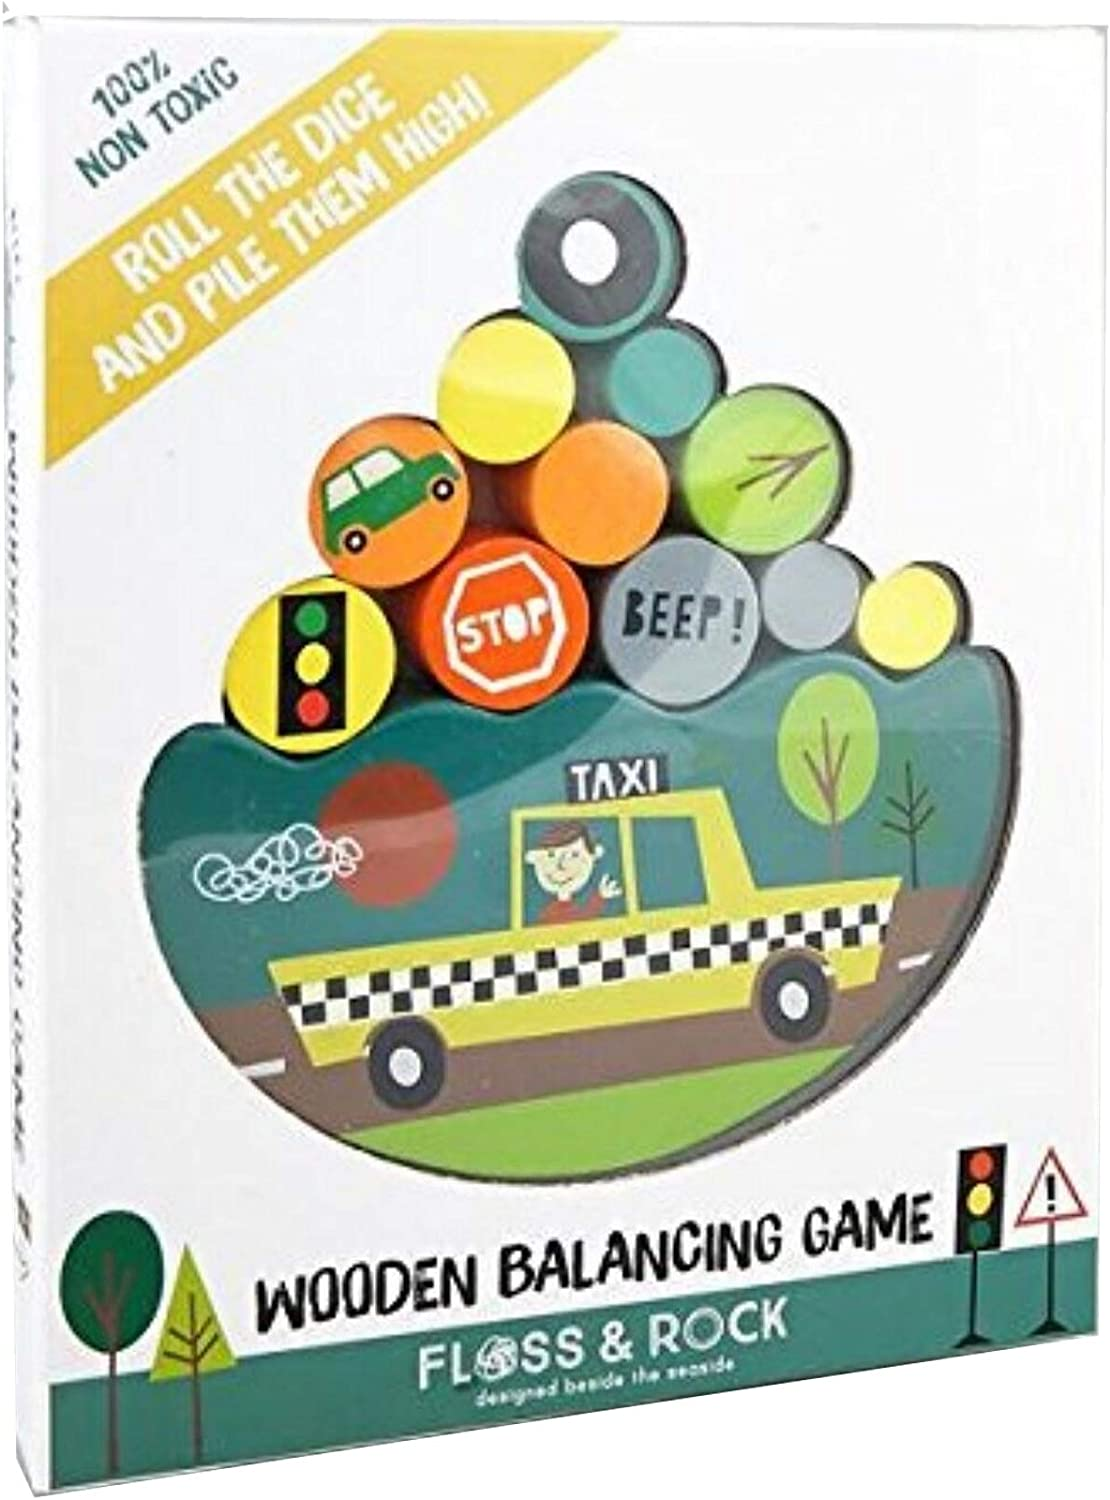 Floss Rock Wooden Balancing New life - Transport Price reduction Game